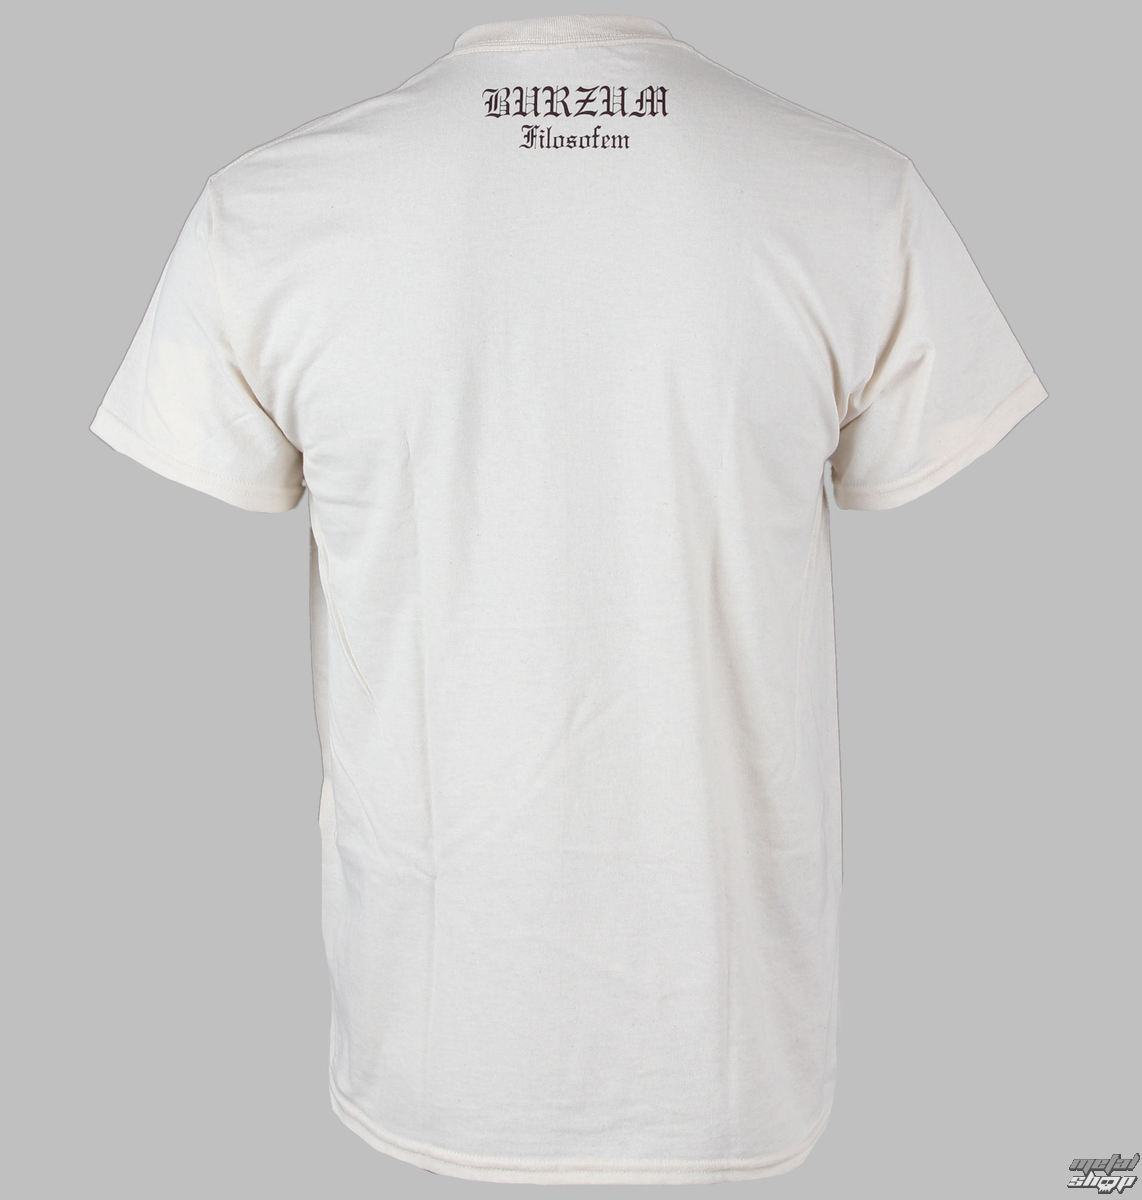 herren t shirt burzum filosofem plastic head gr e xxl ebay. Black Bedroom Furniture Sets. Home Design Ideas